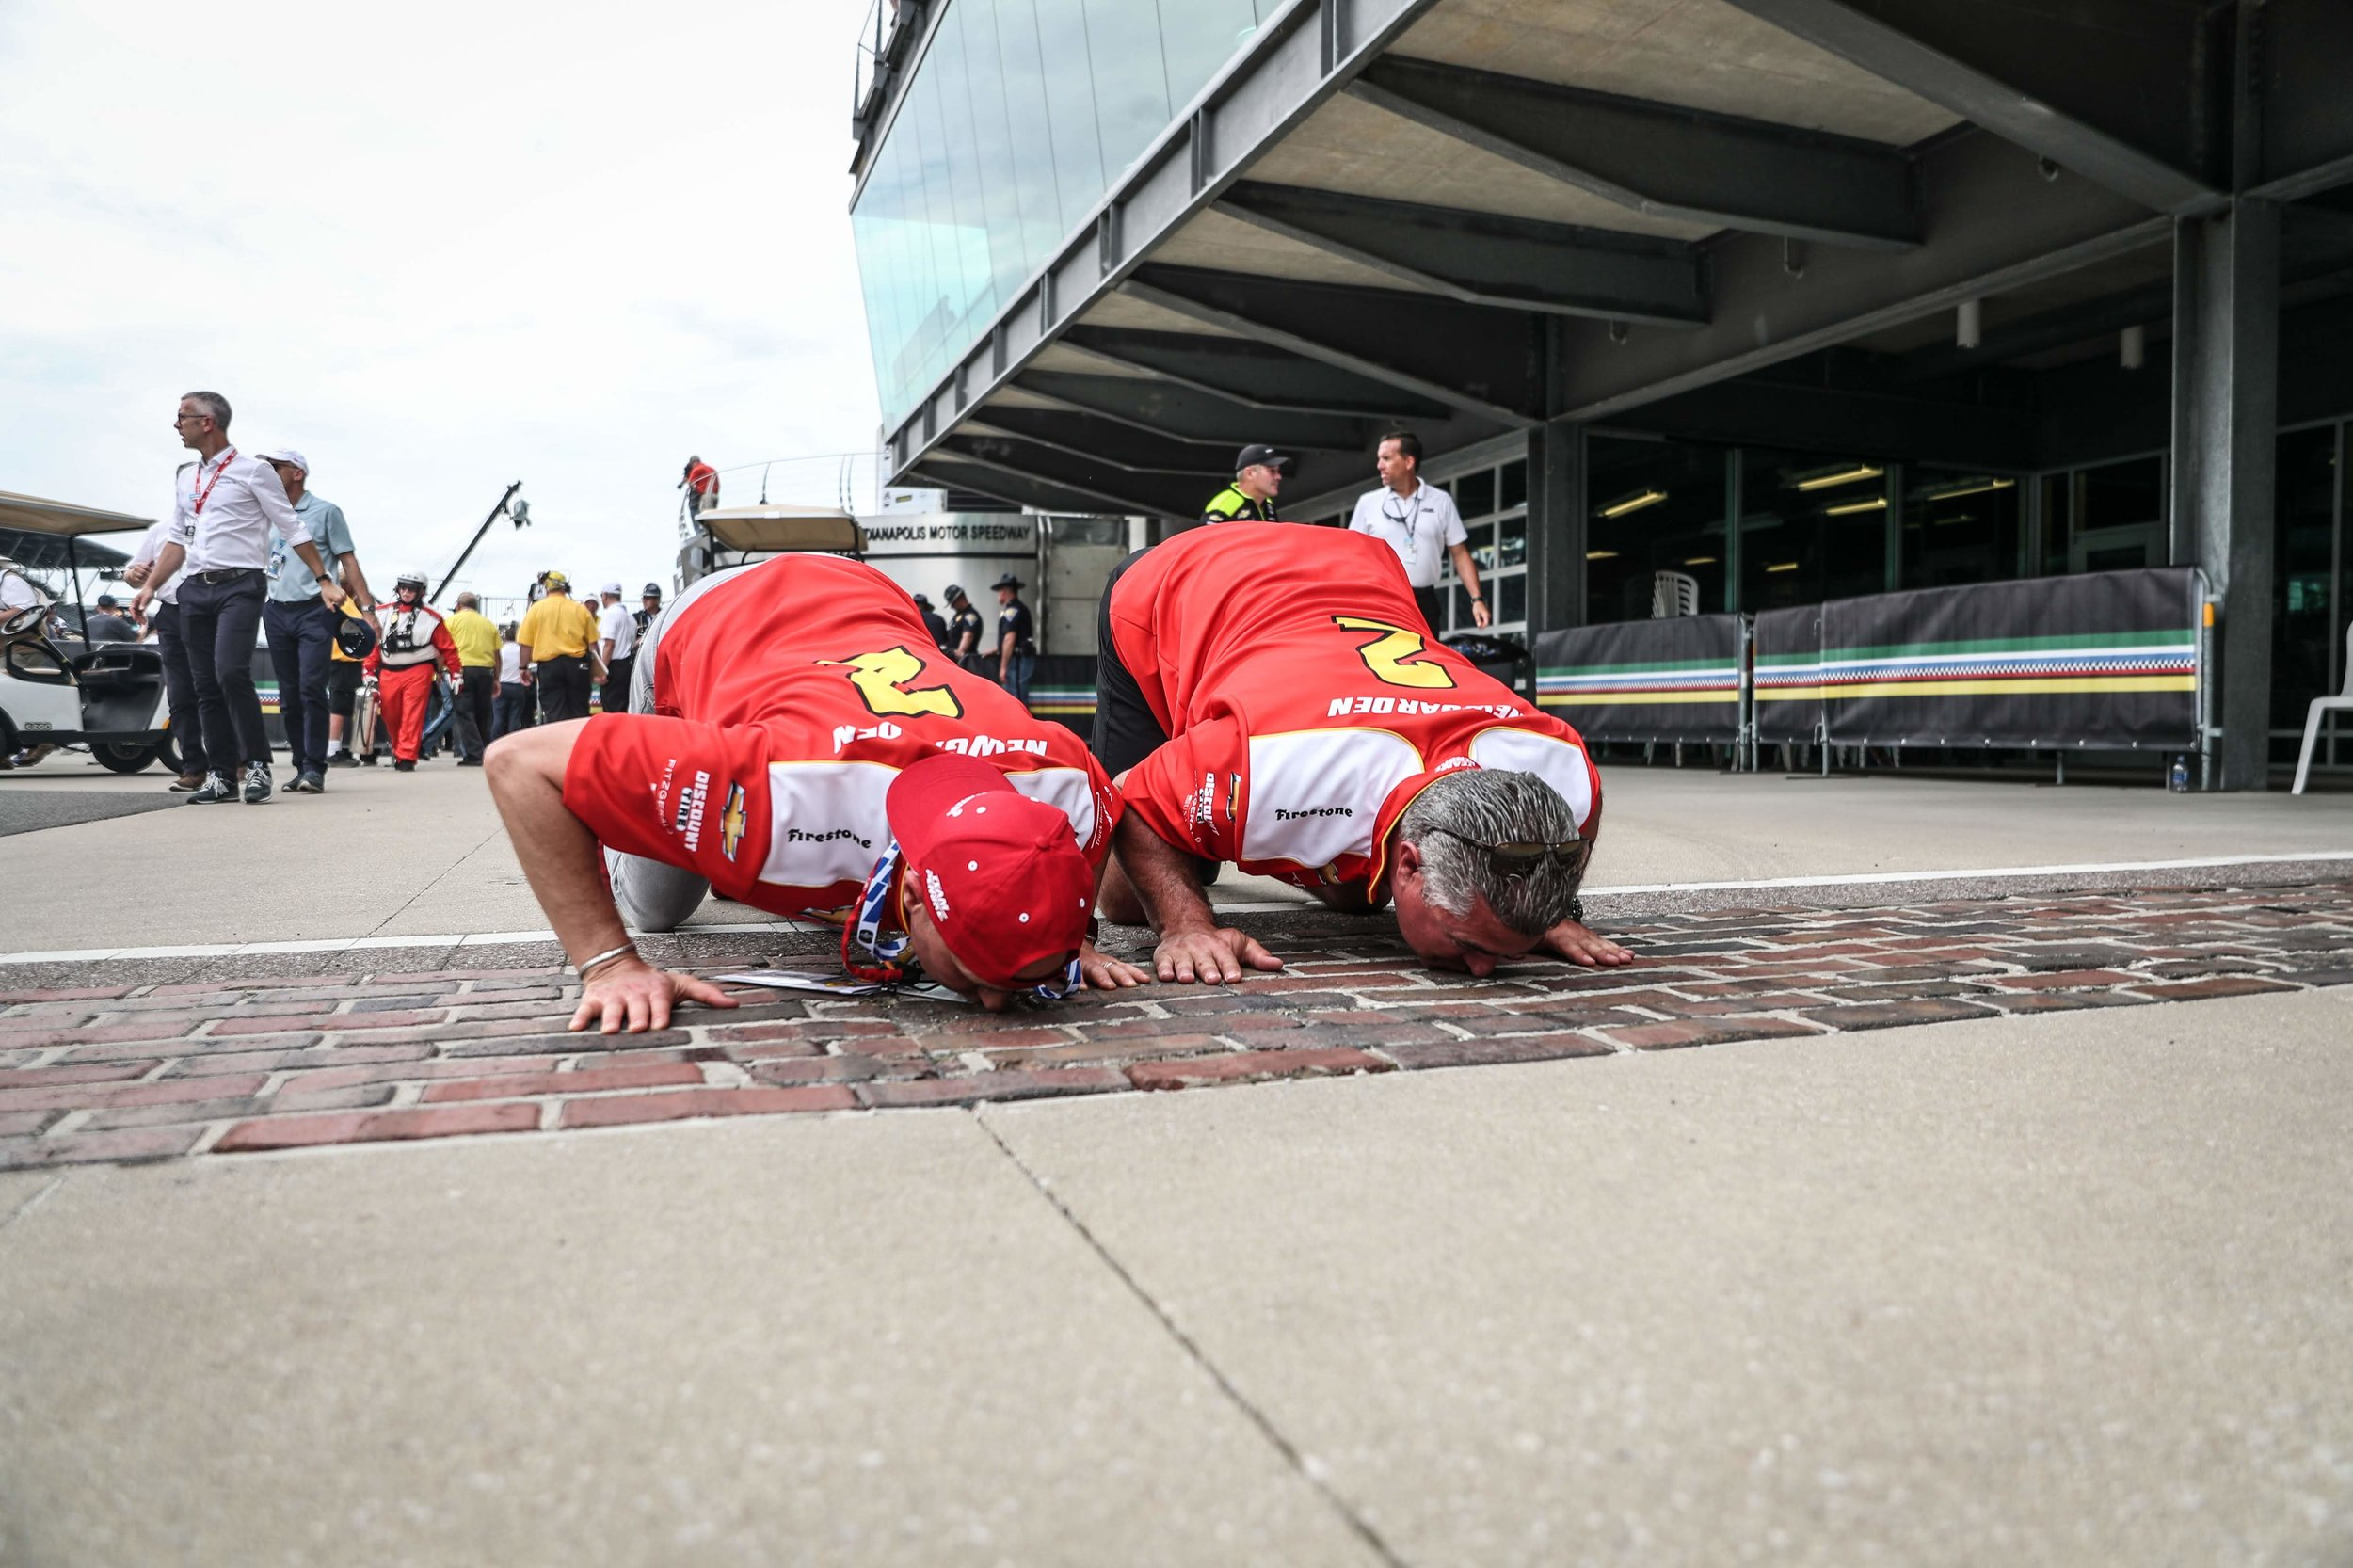 Kissing the bricks to celebrate the win.